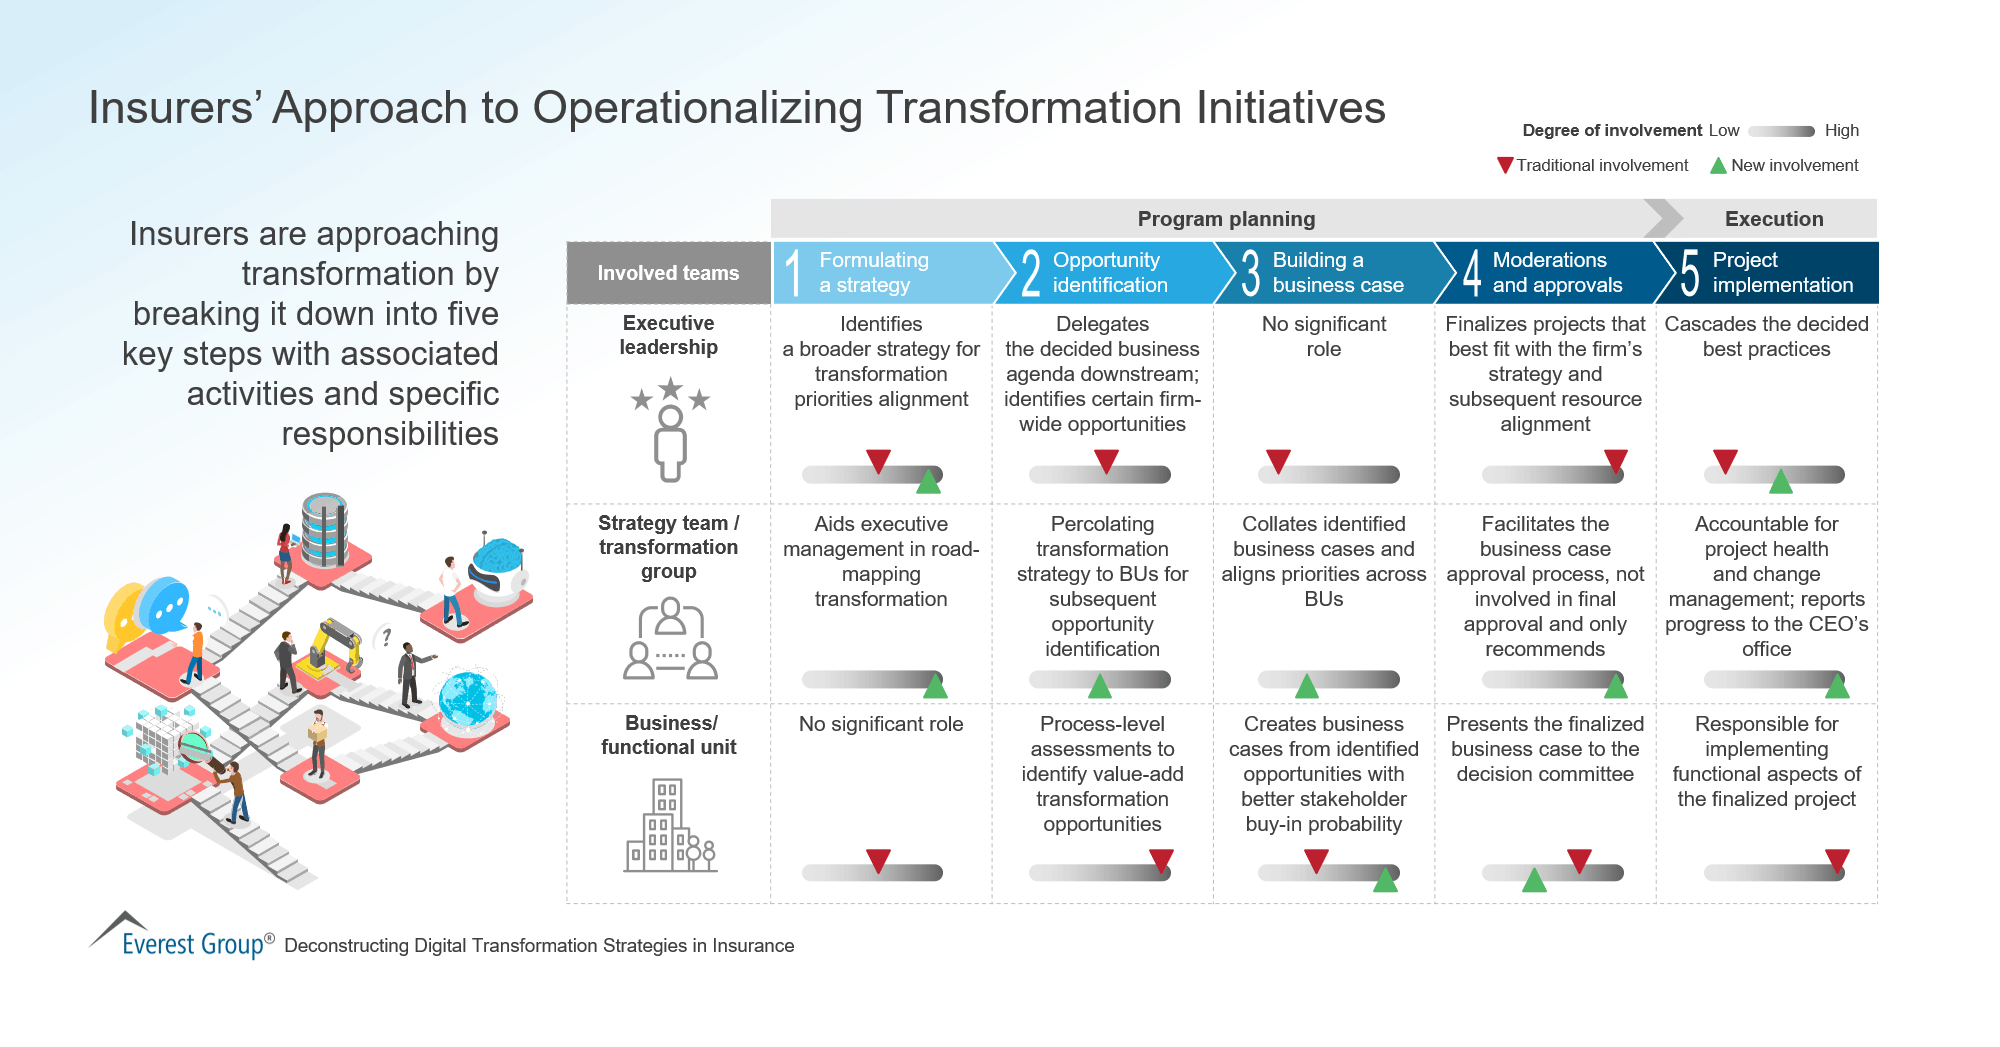 Insurers' Approach to Operationalizing Transformation Initiatives